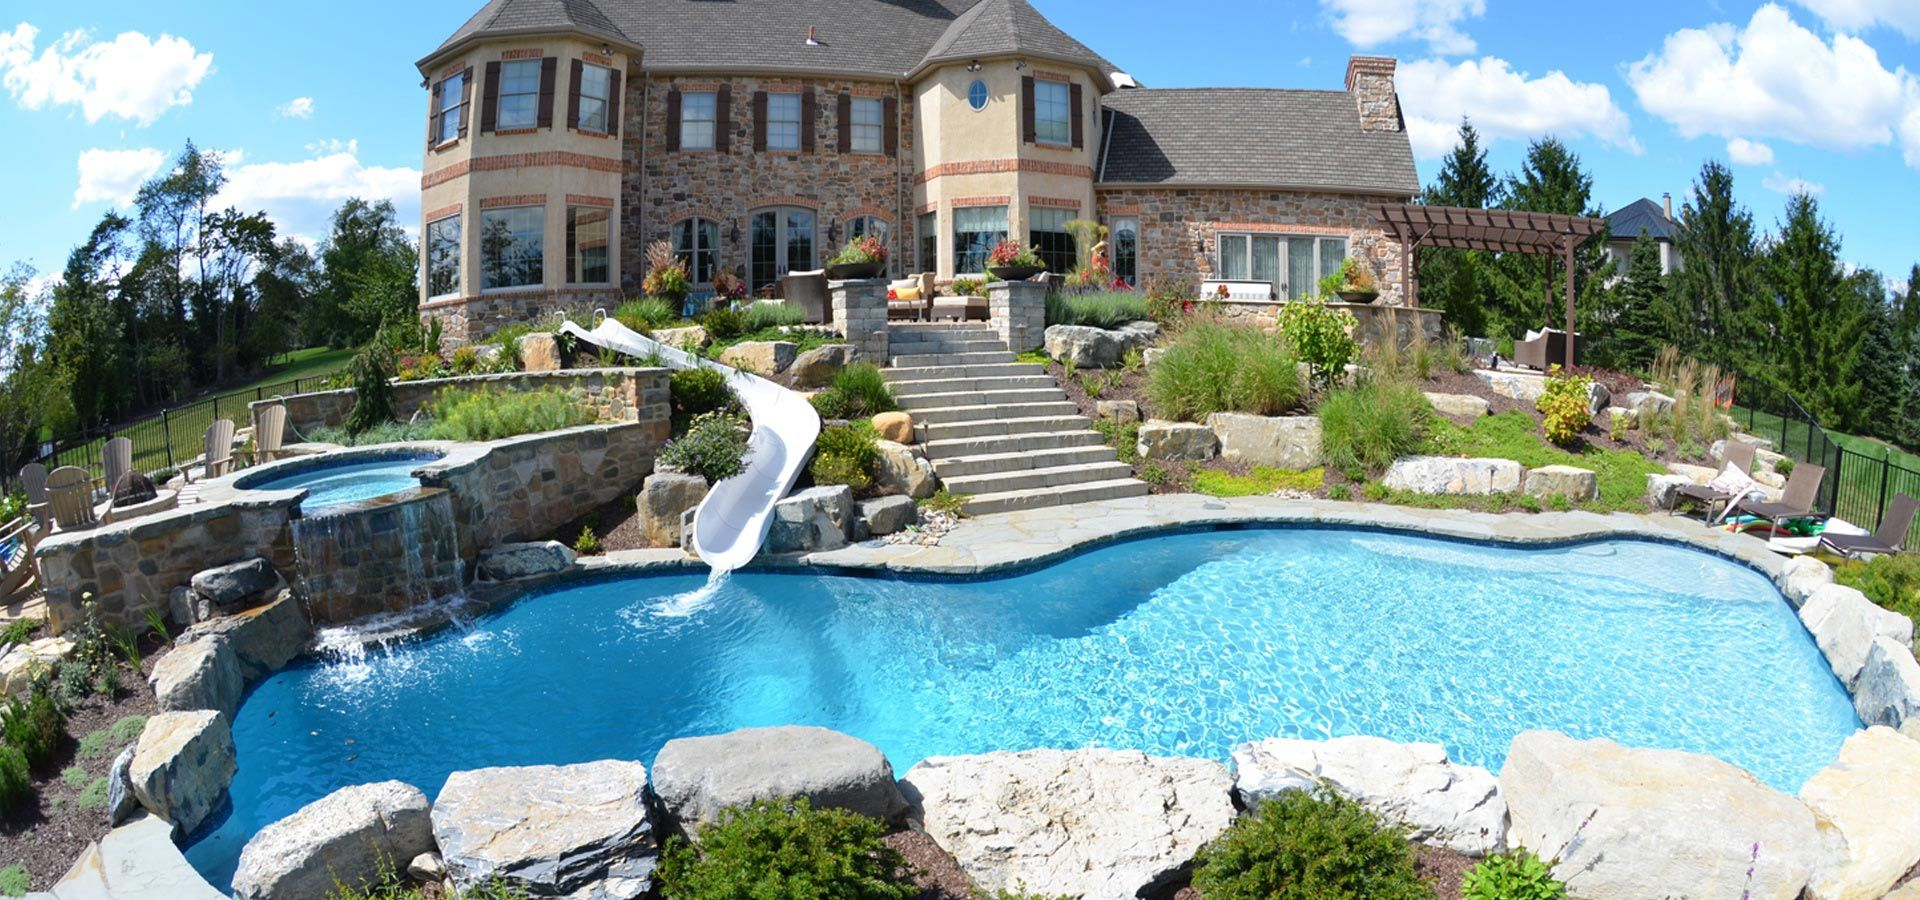 105 incredible pool and spa design - Swim Pool Designs